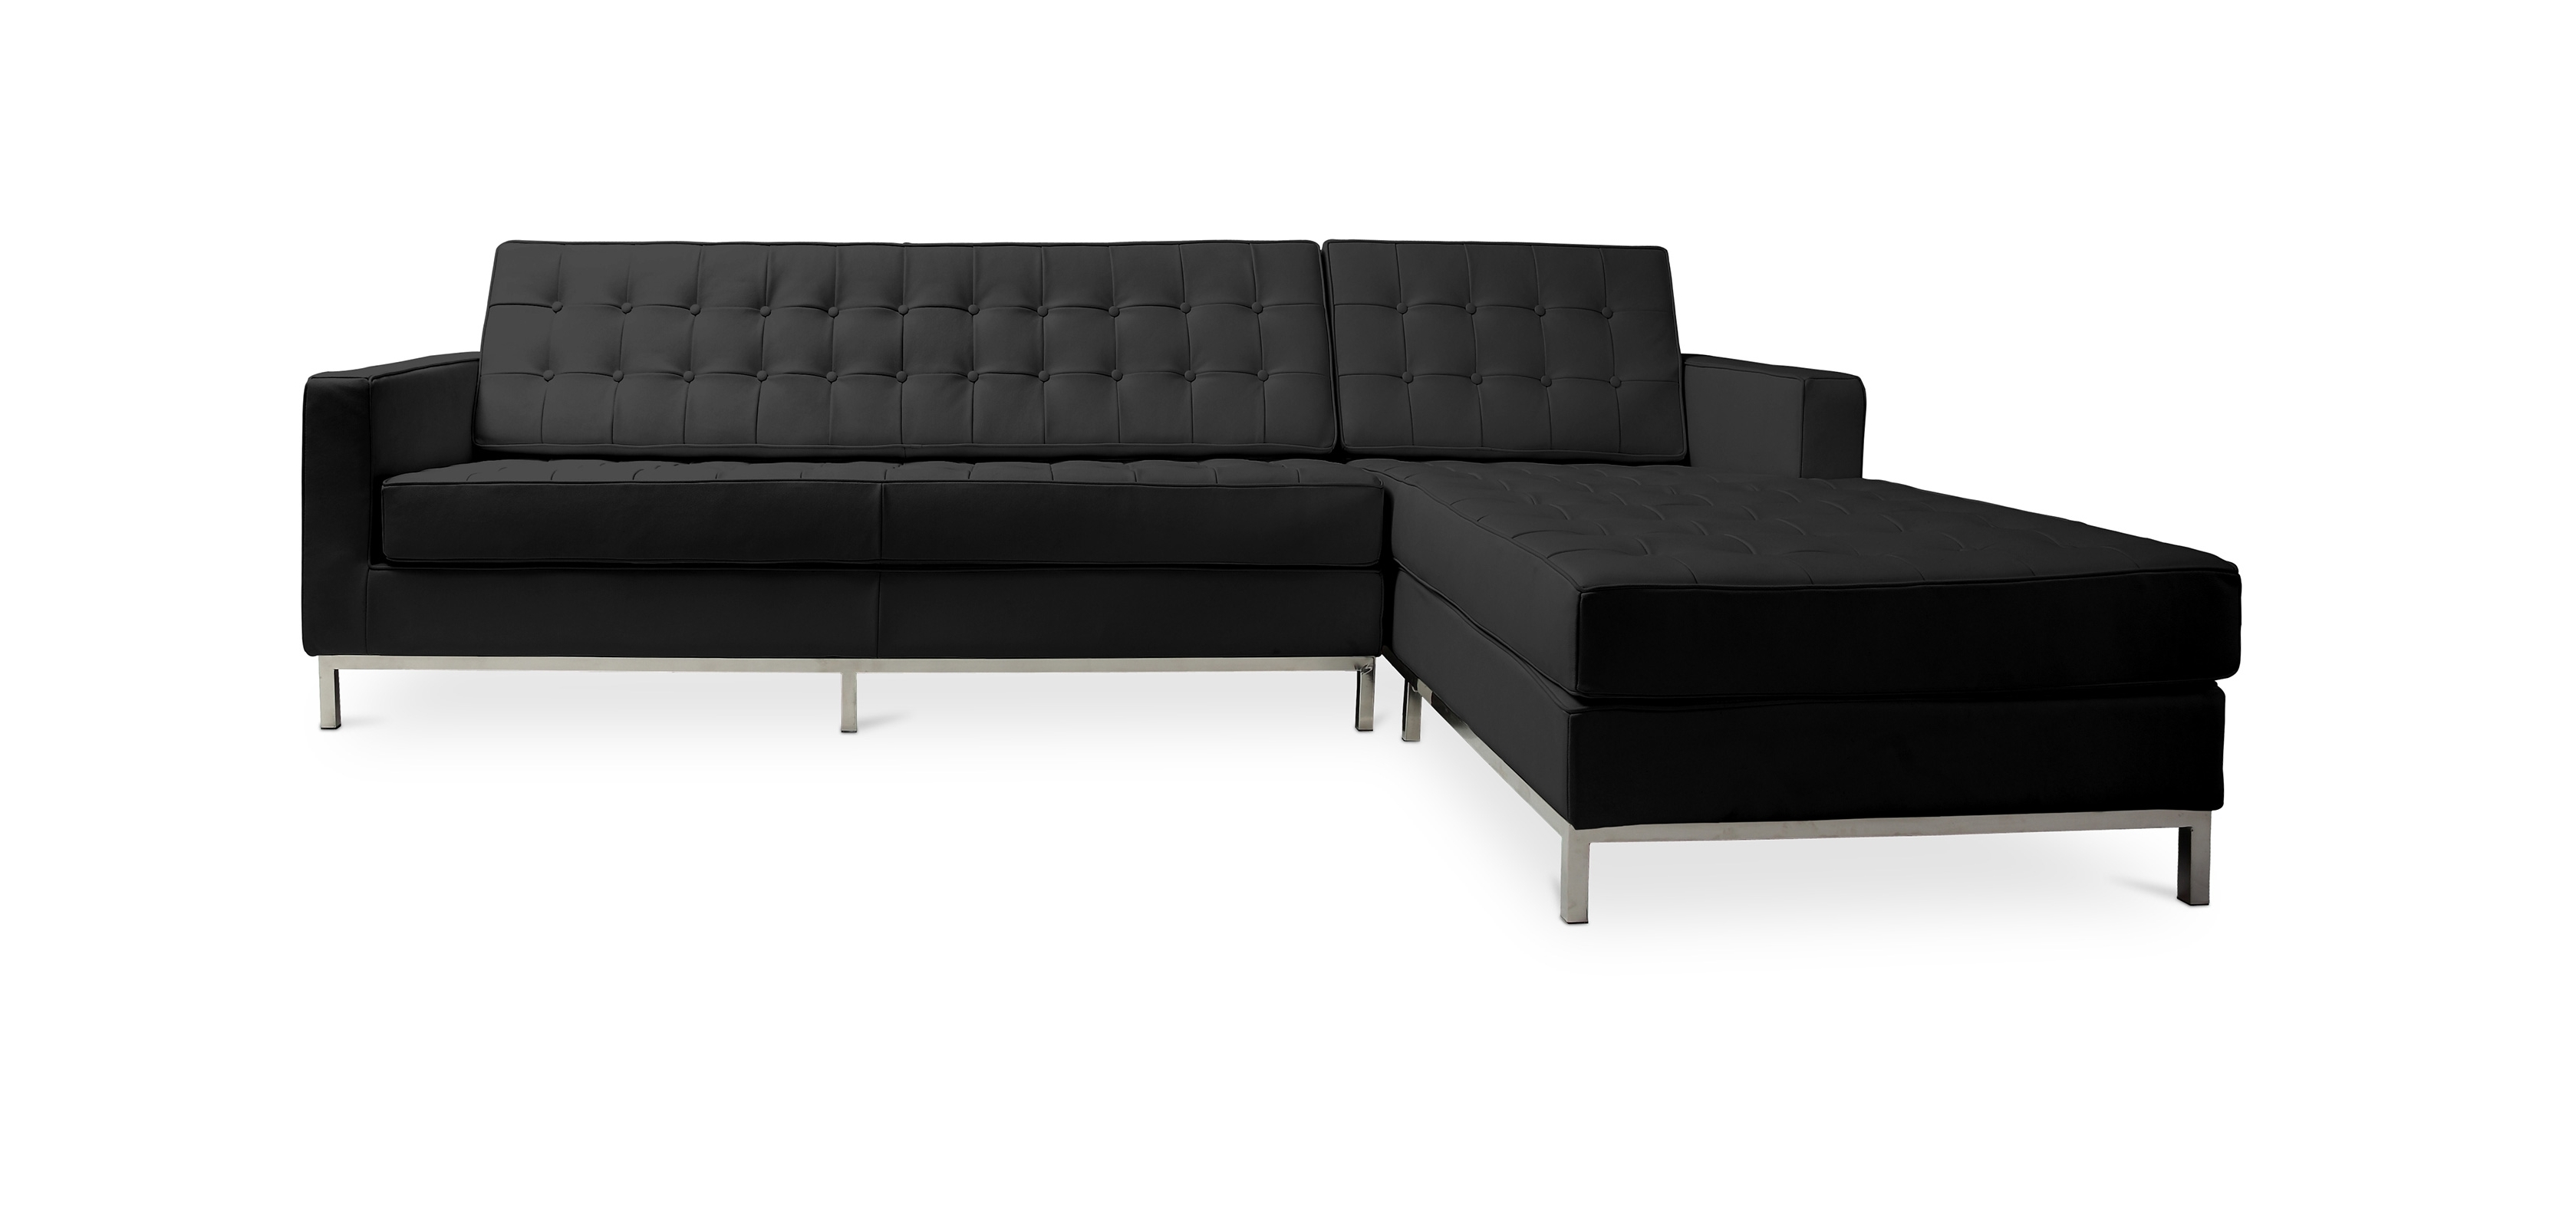 Design Corner Sofa Florence Knoll Style – Left Angle – Premium Within Most Up To Date Florence Large Sofas (View 3 of 20)